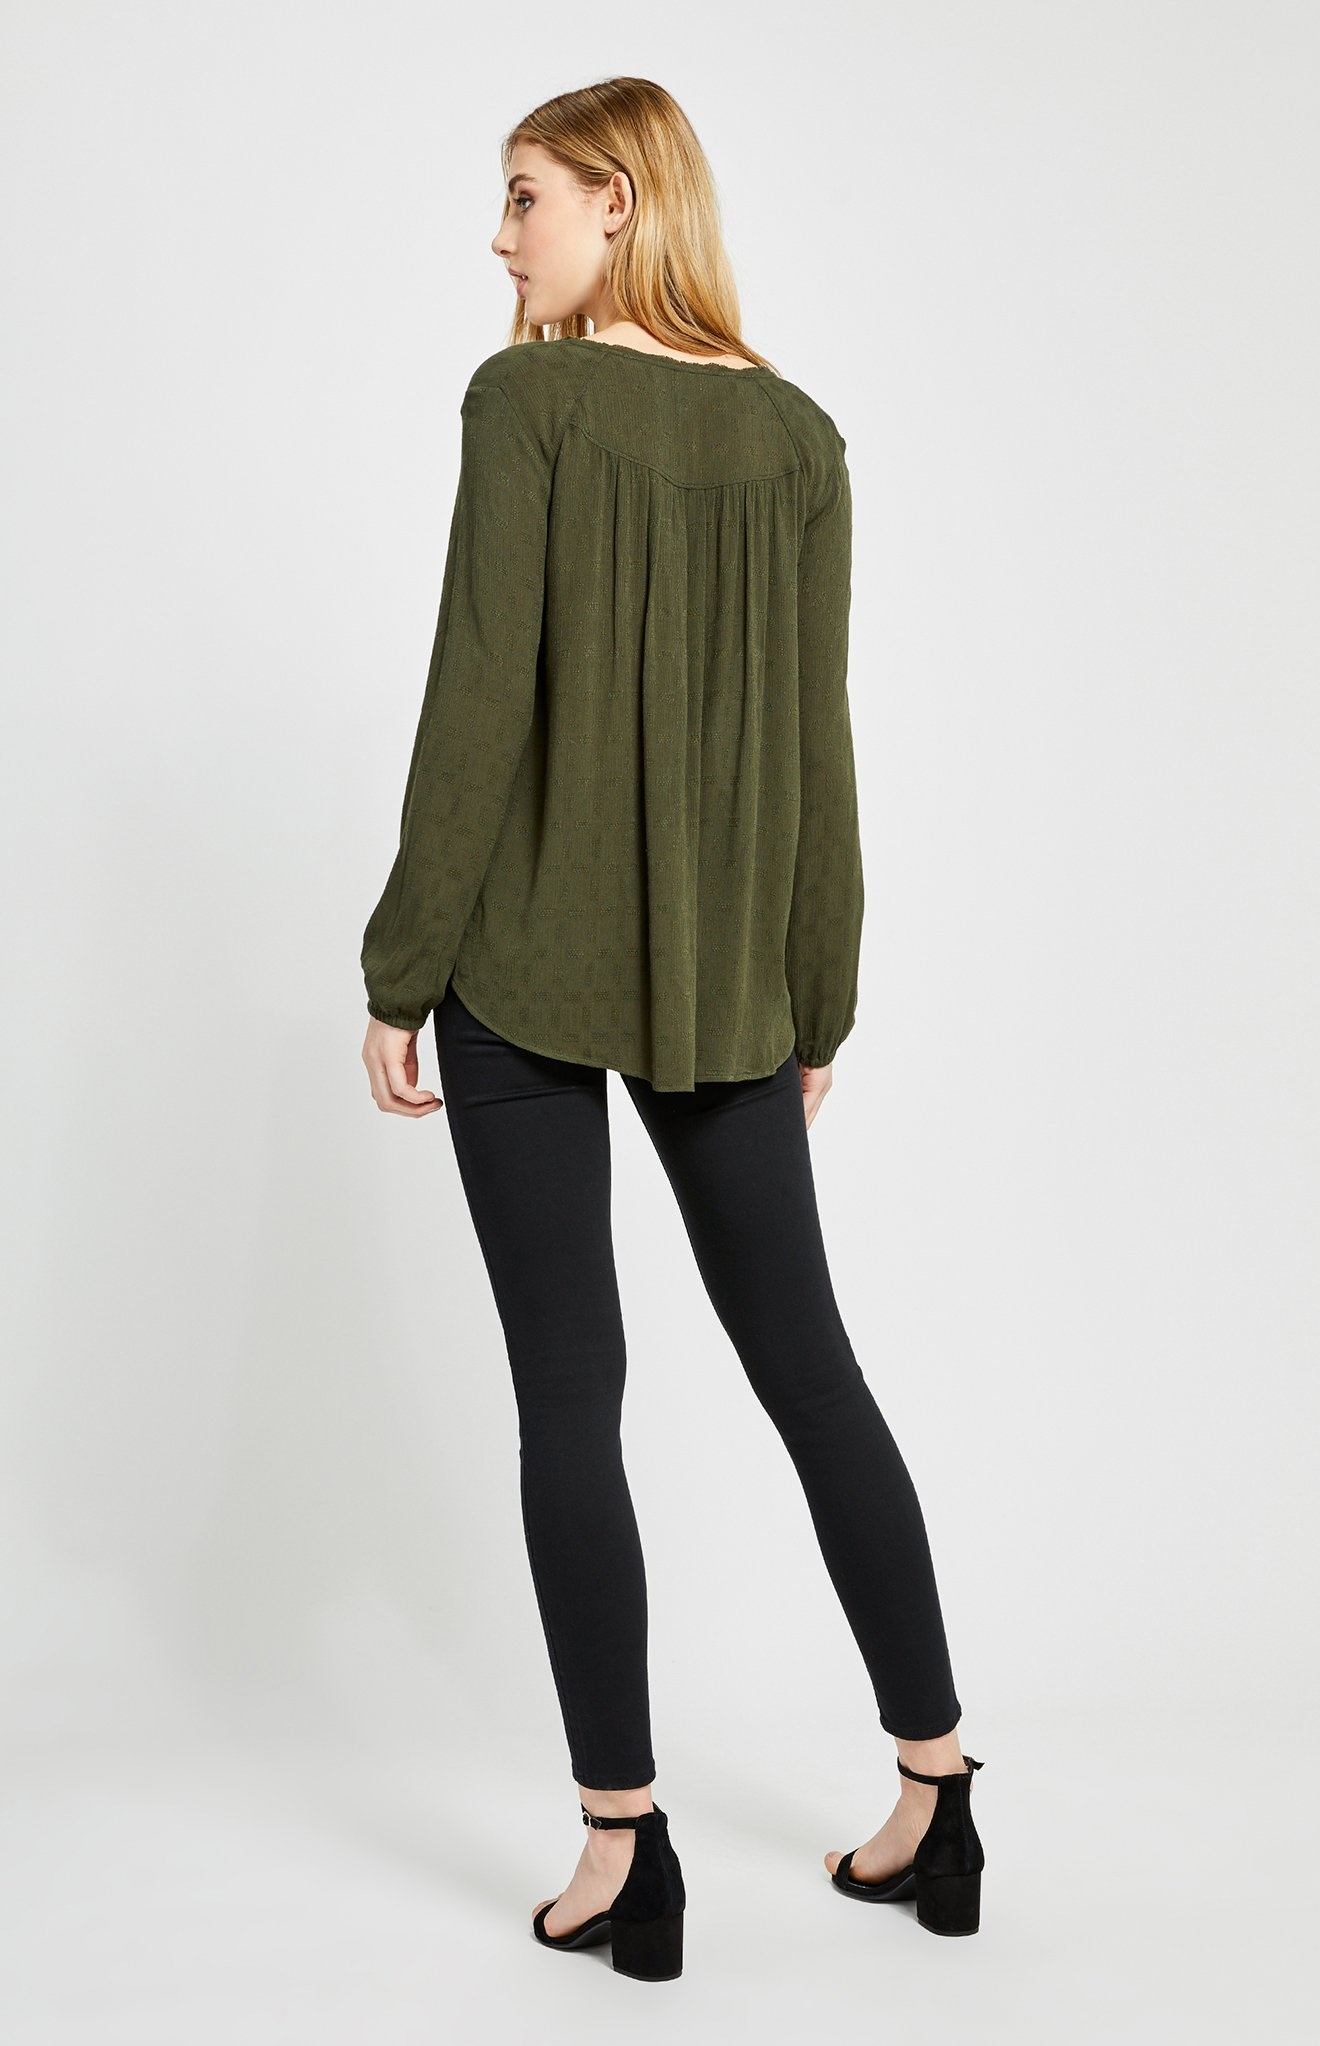 Gentlefawn Emma Blouse